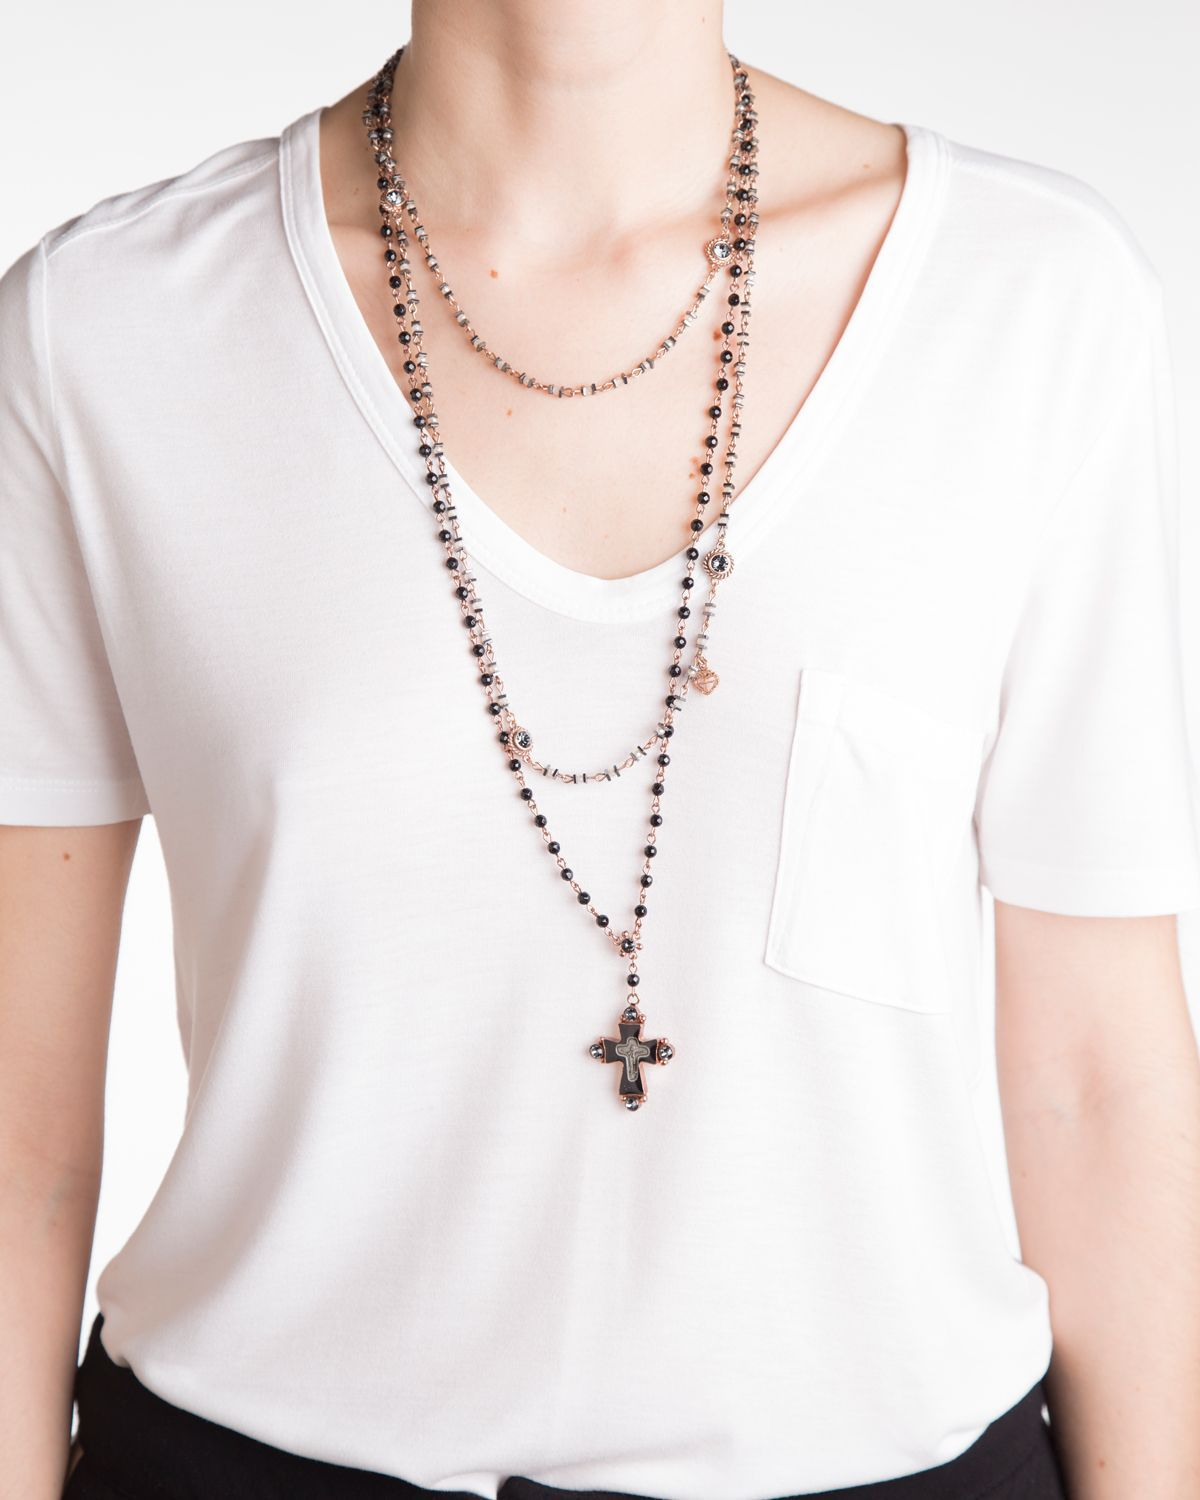 vsa-rose-black-cross-rosary-4